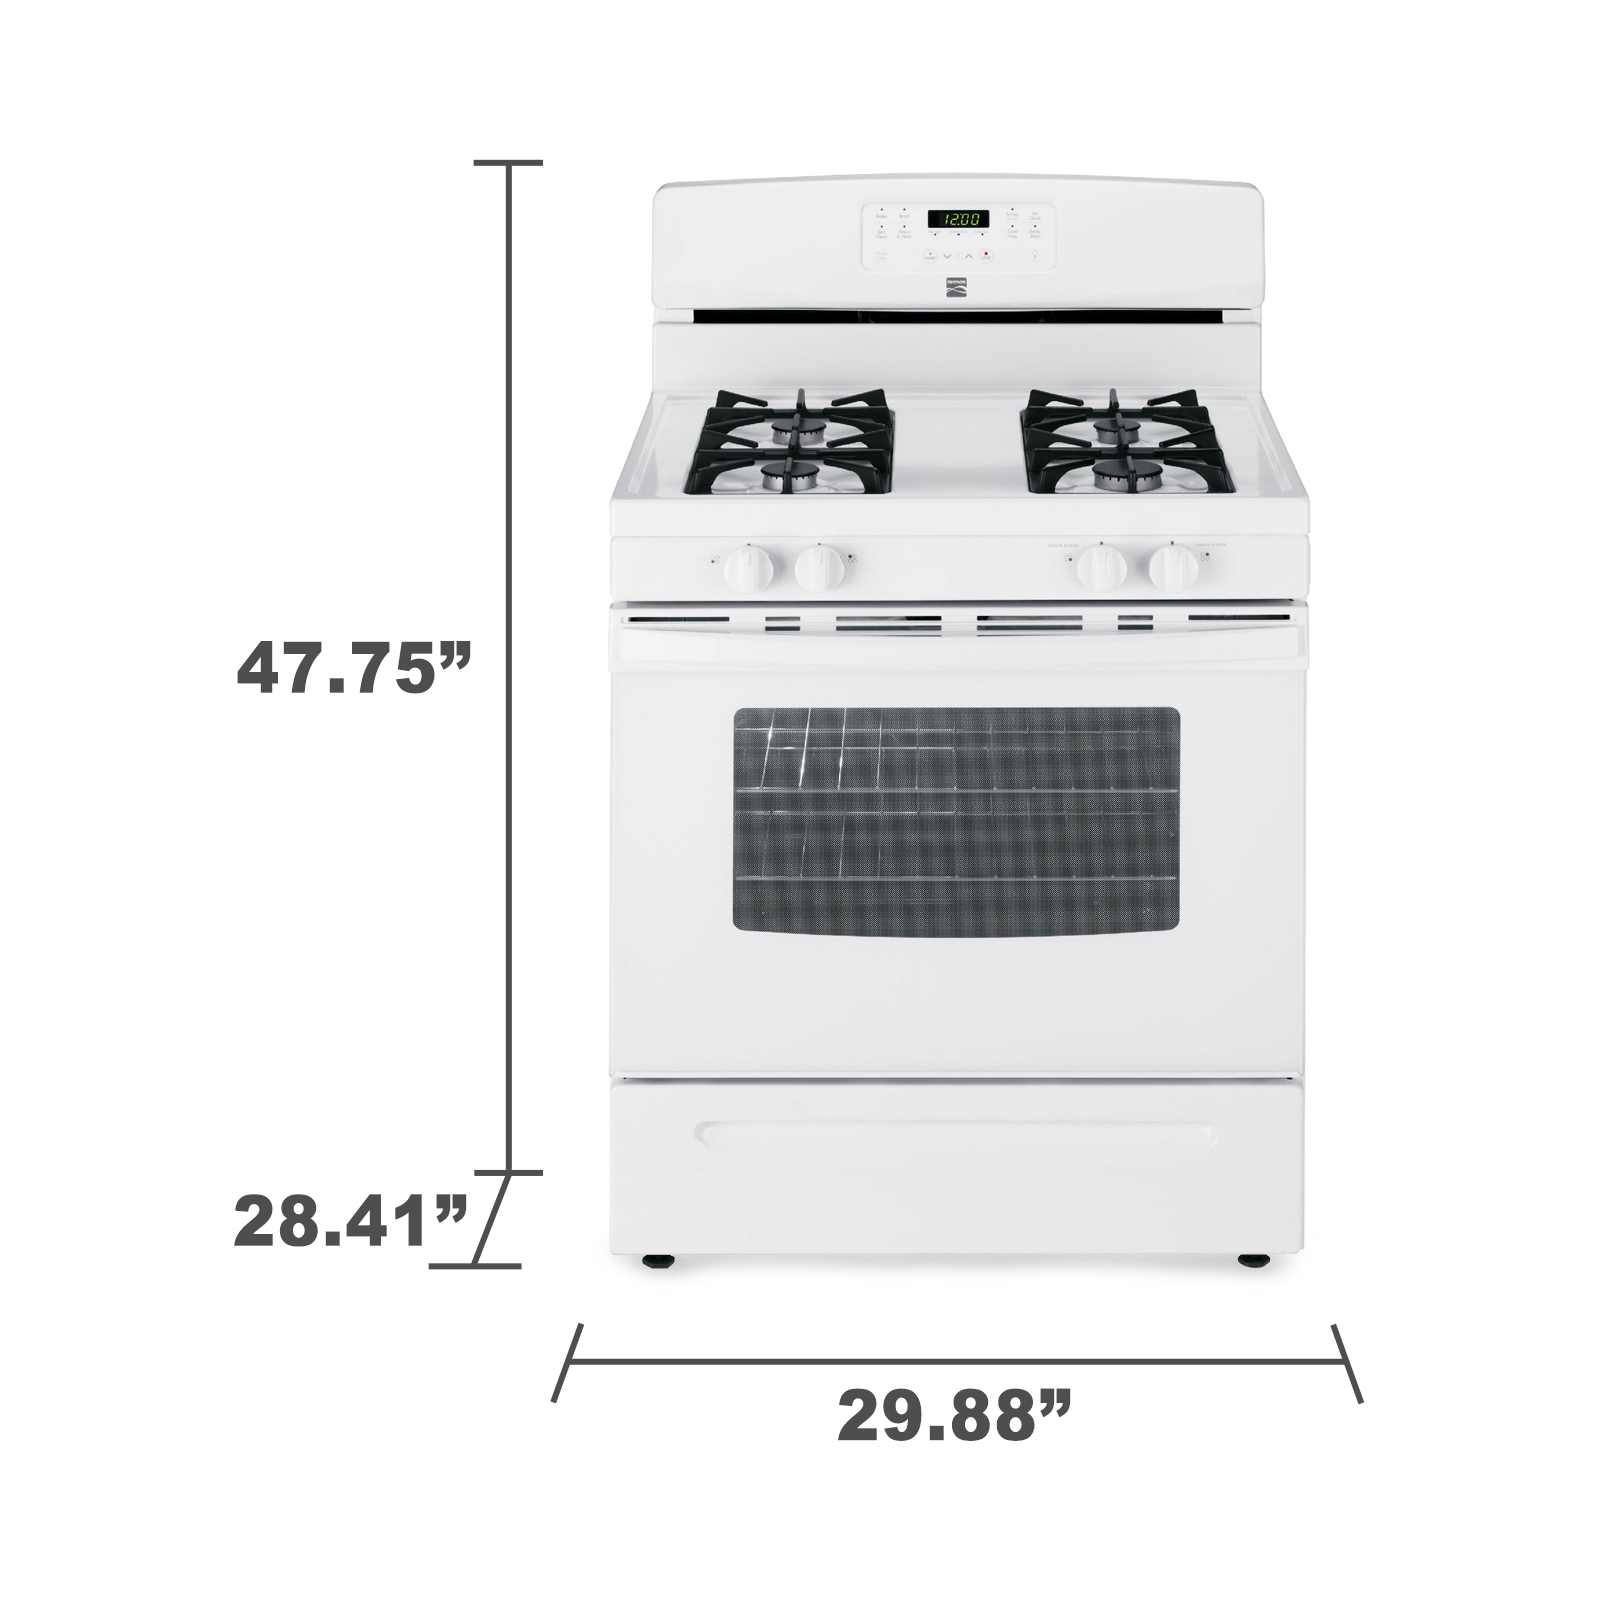 Kenmore 74032 5.0 cu. ft. Gas Range - White